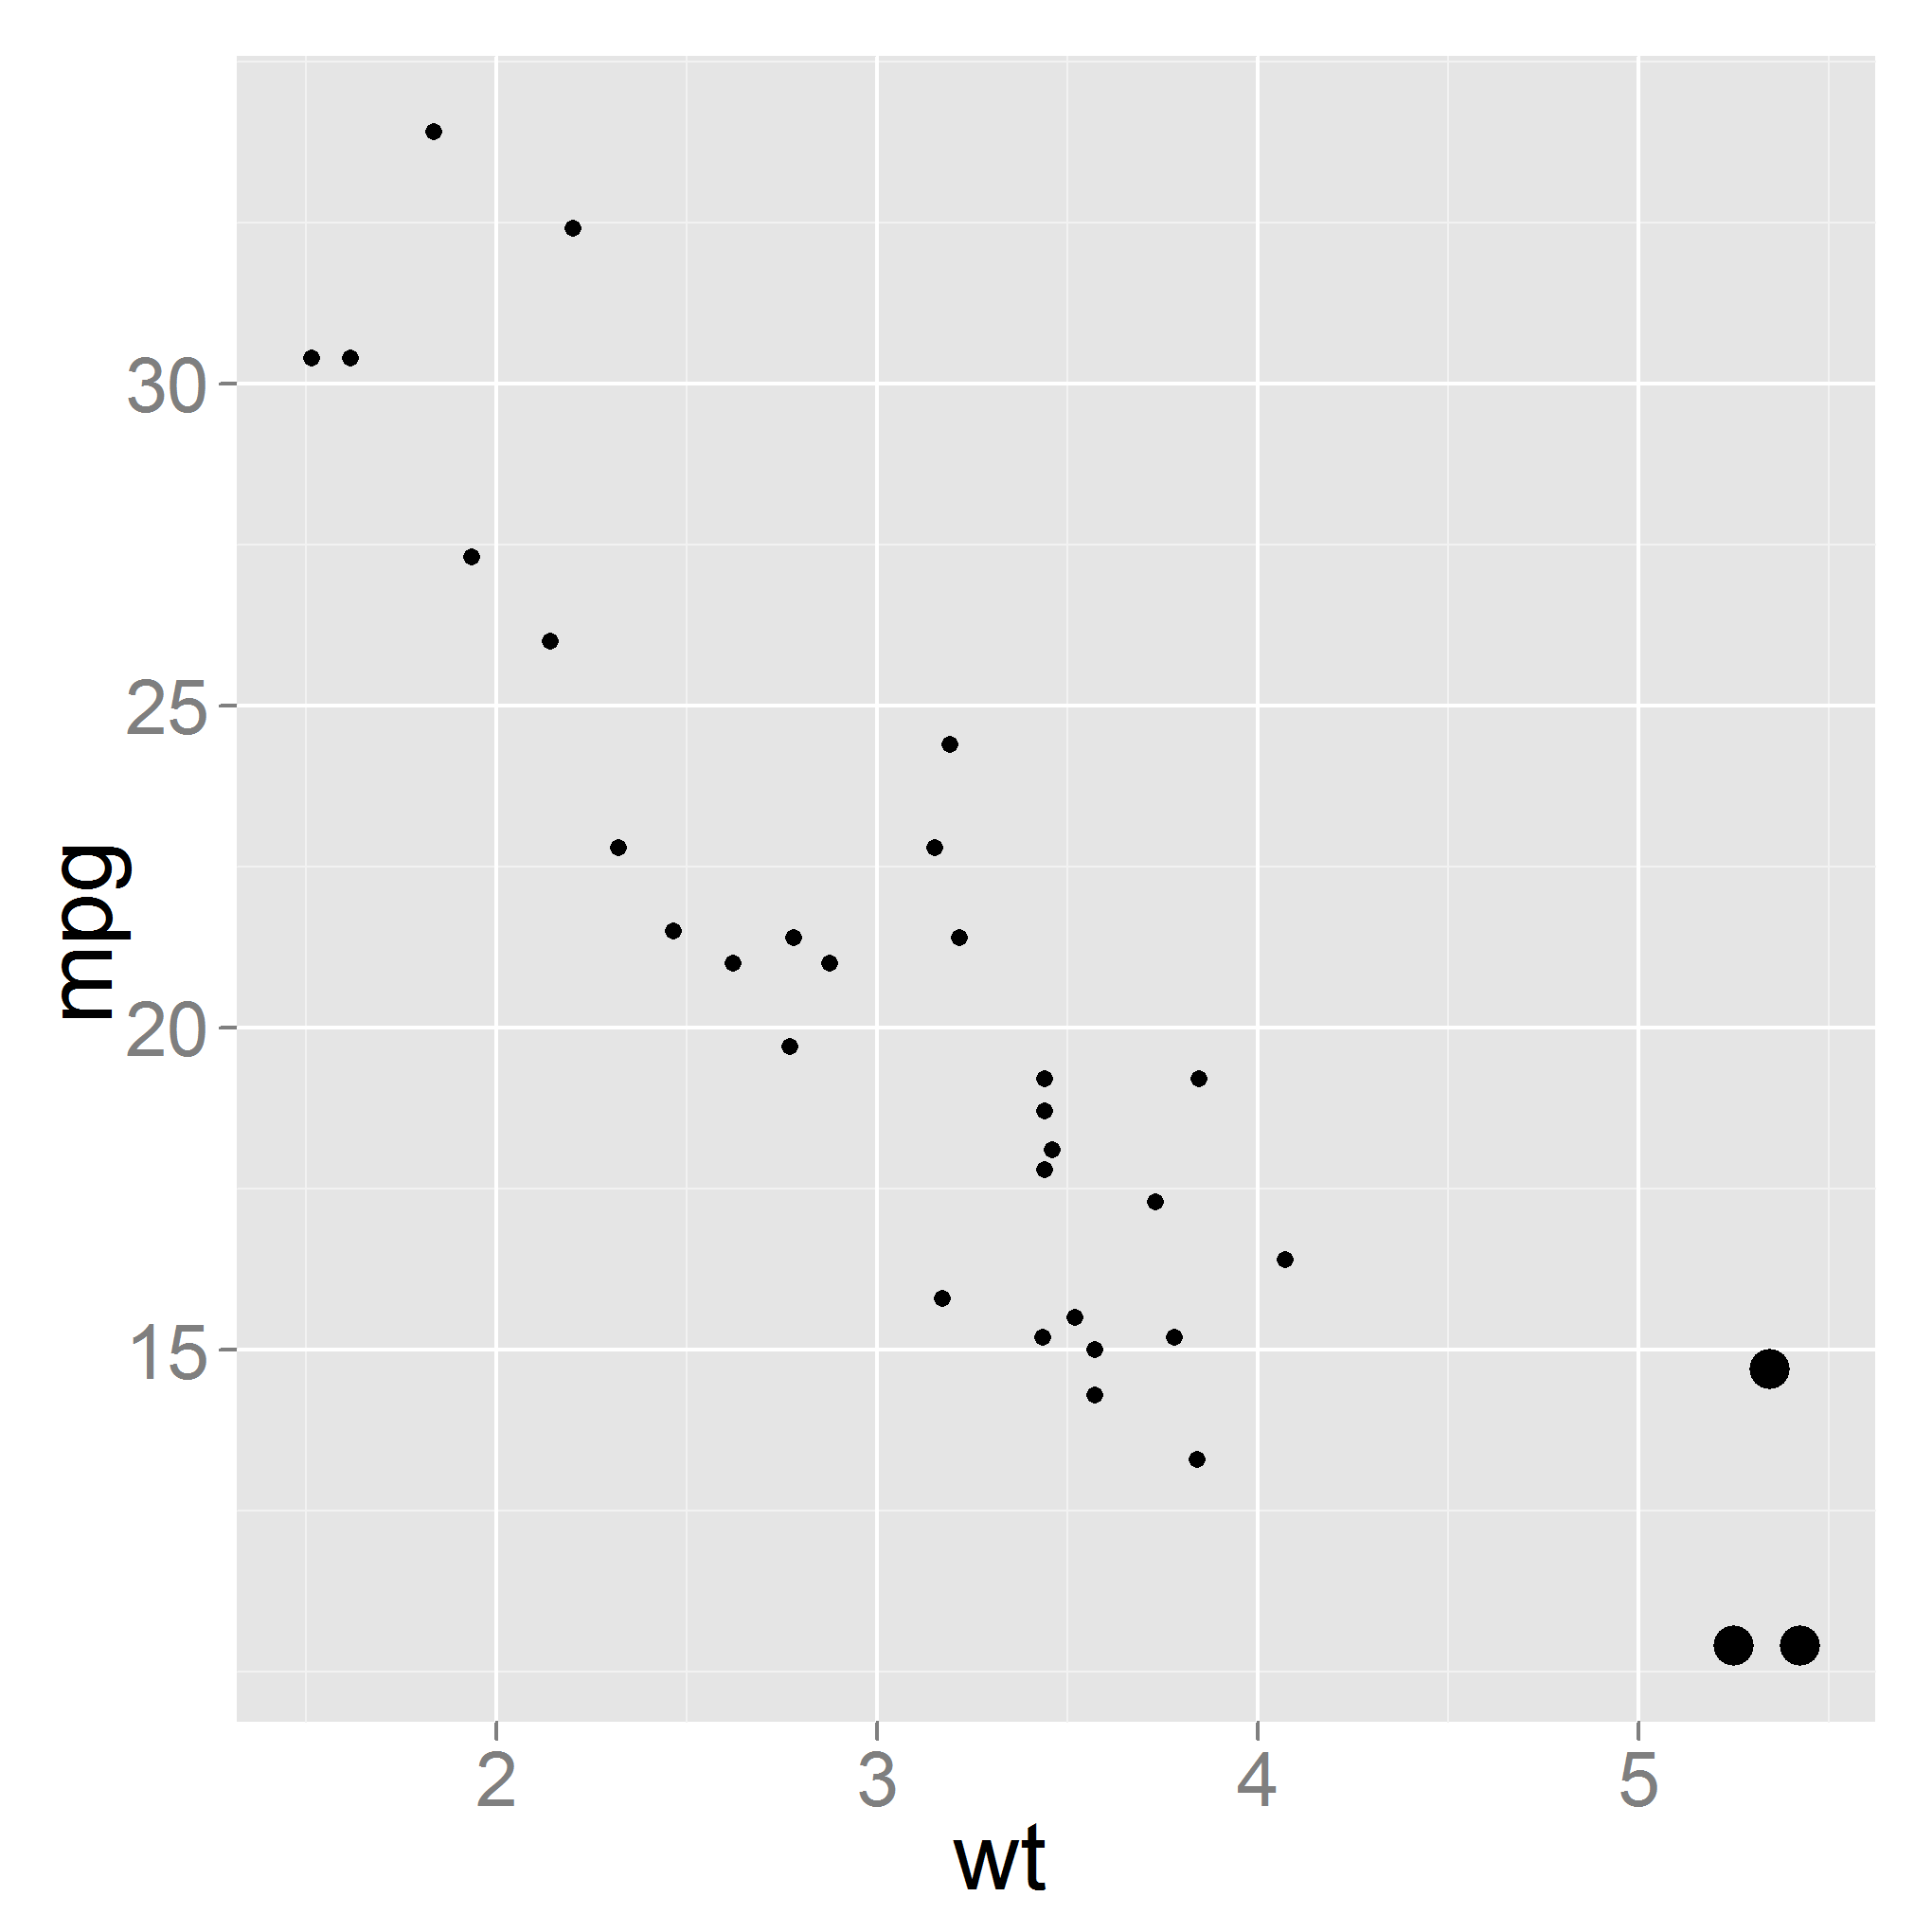 The outliers on the right are emphsised